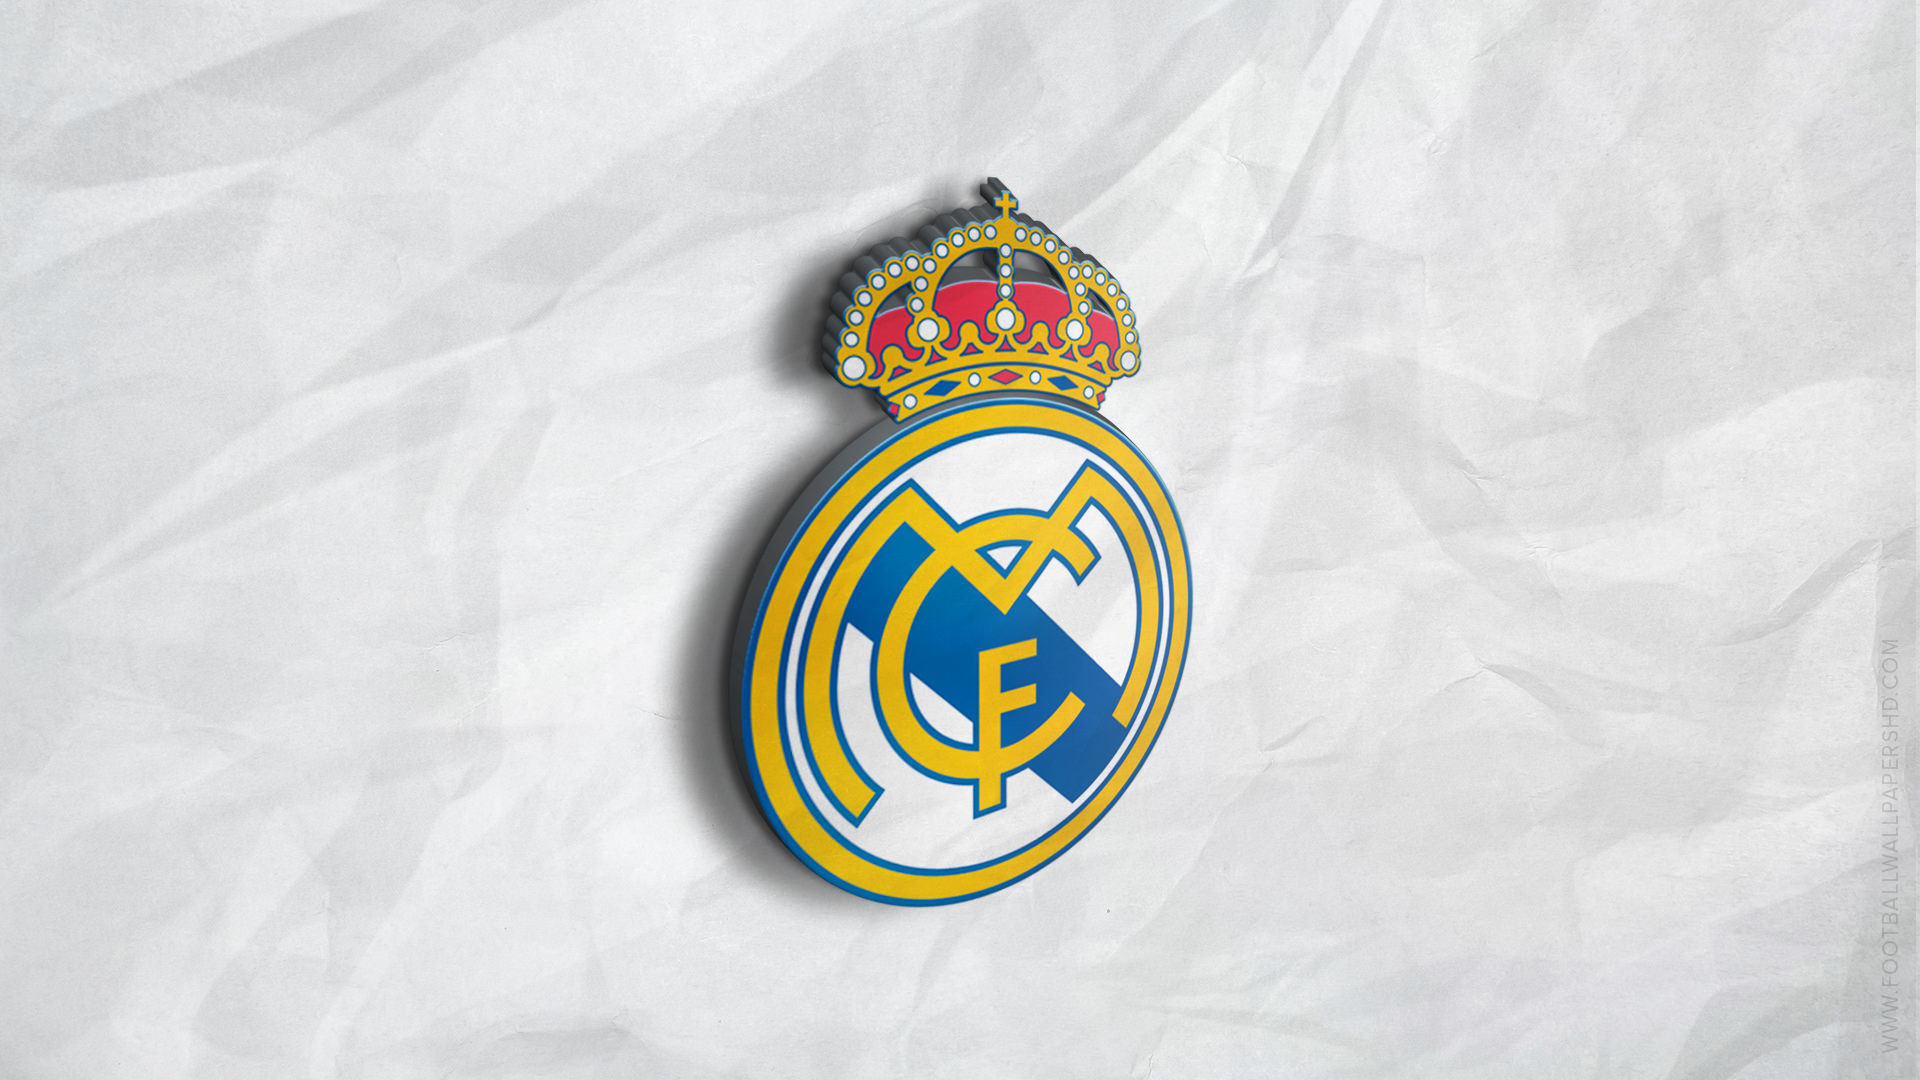 1920x1080 real madrid 3d logo football image wallpaper ...